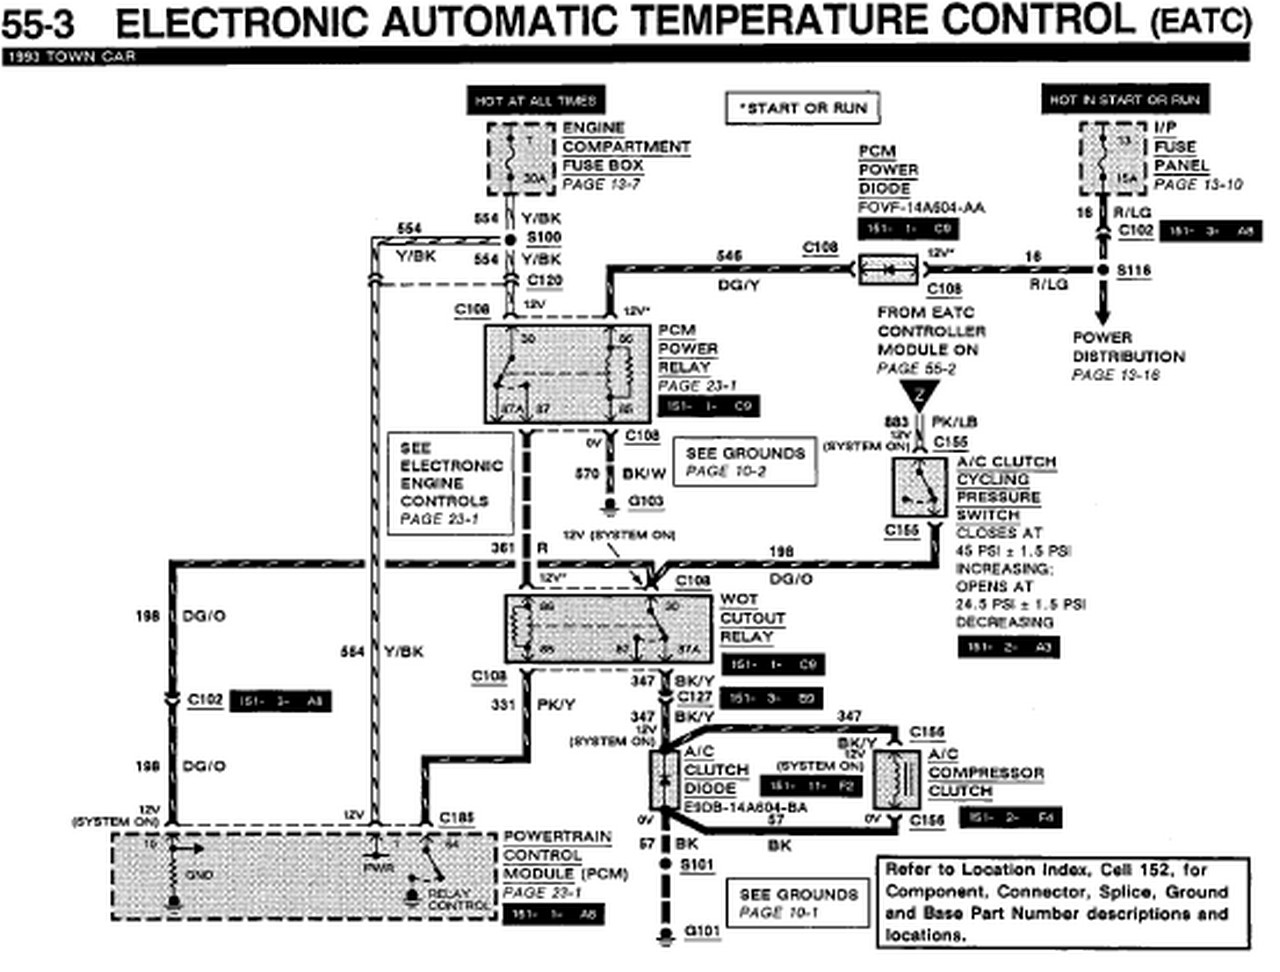 Lincoln Town Car Eatc Wiring Diagram